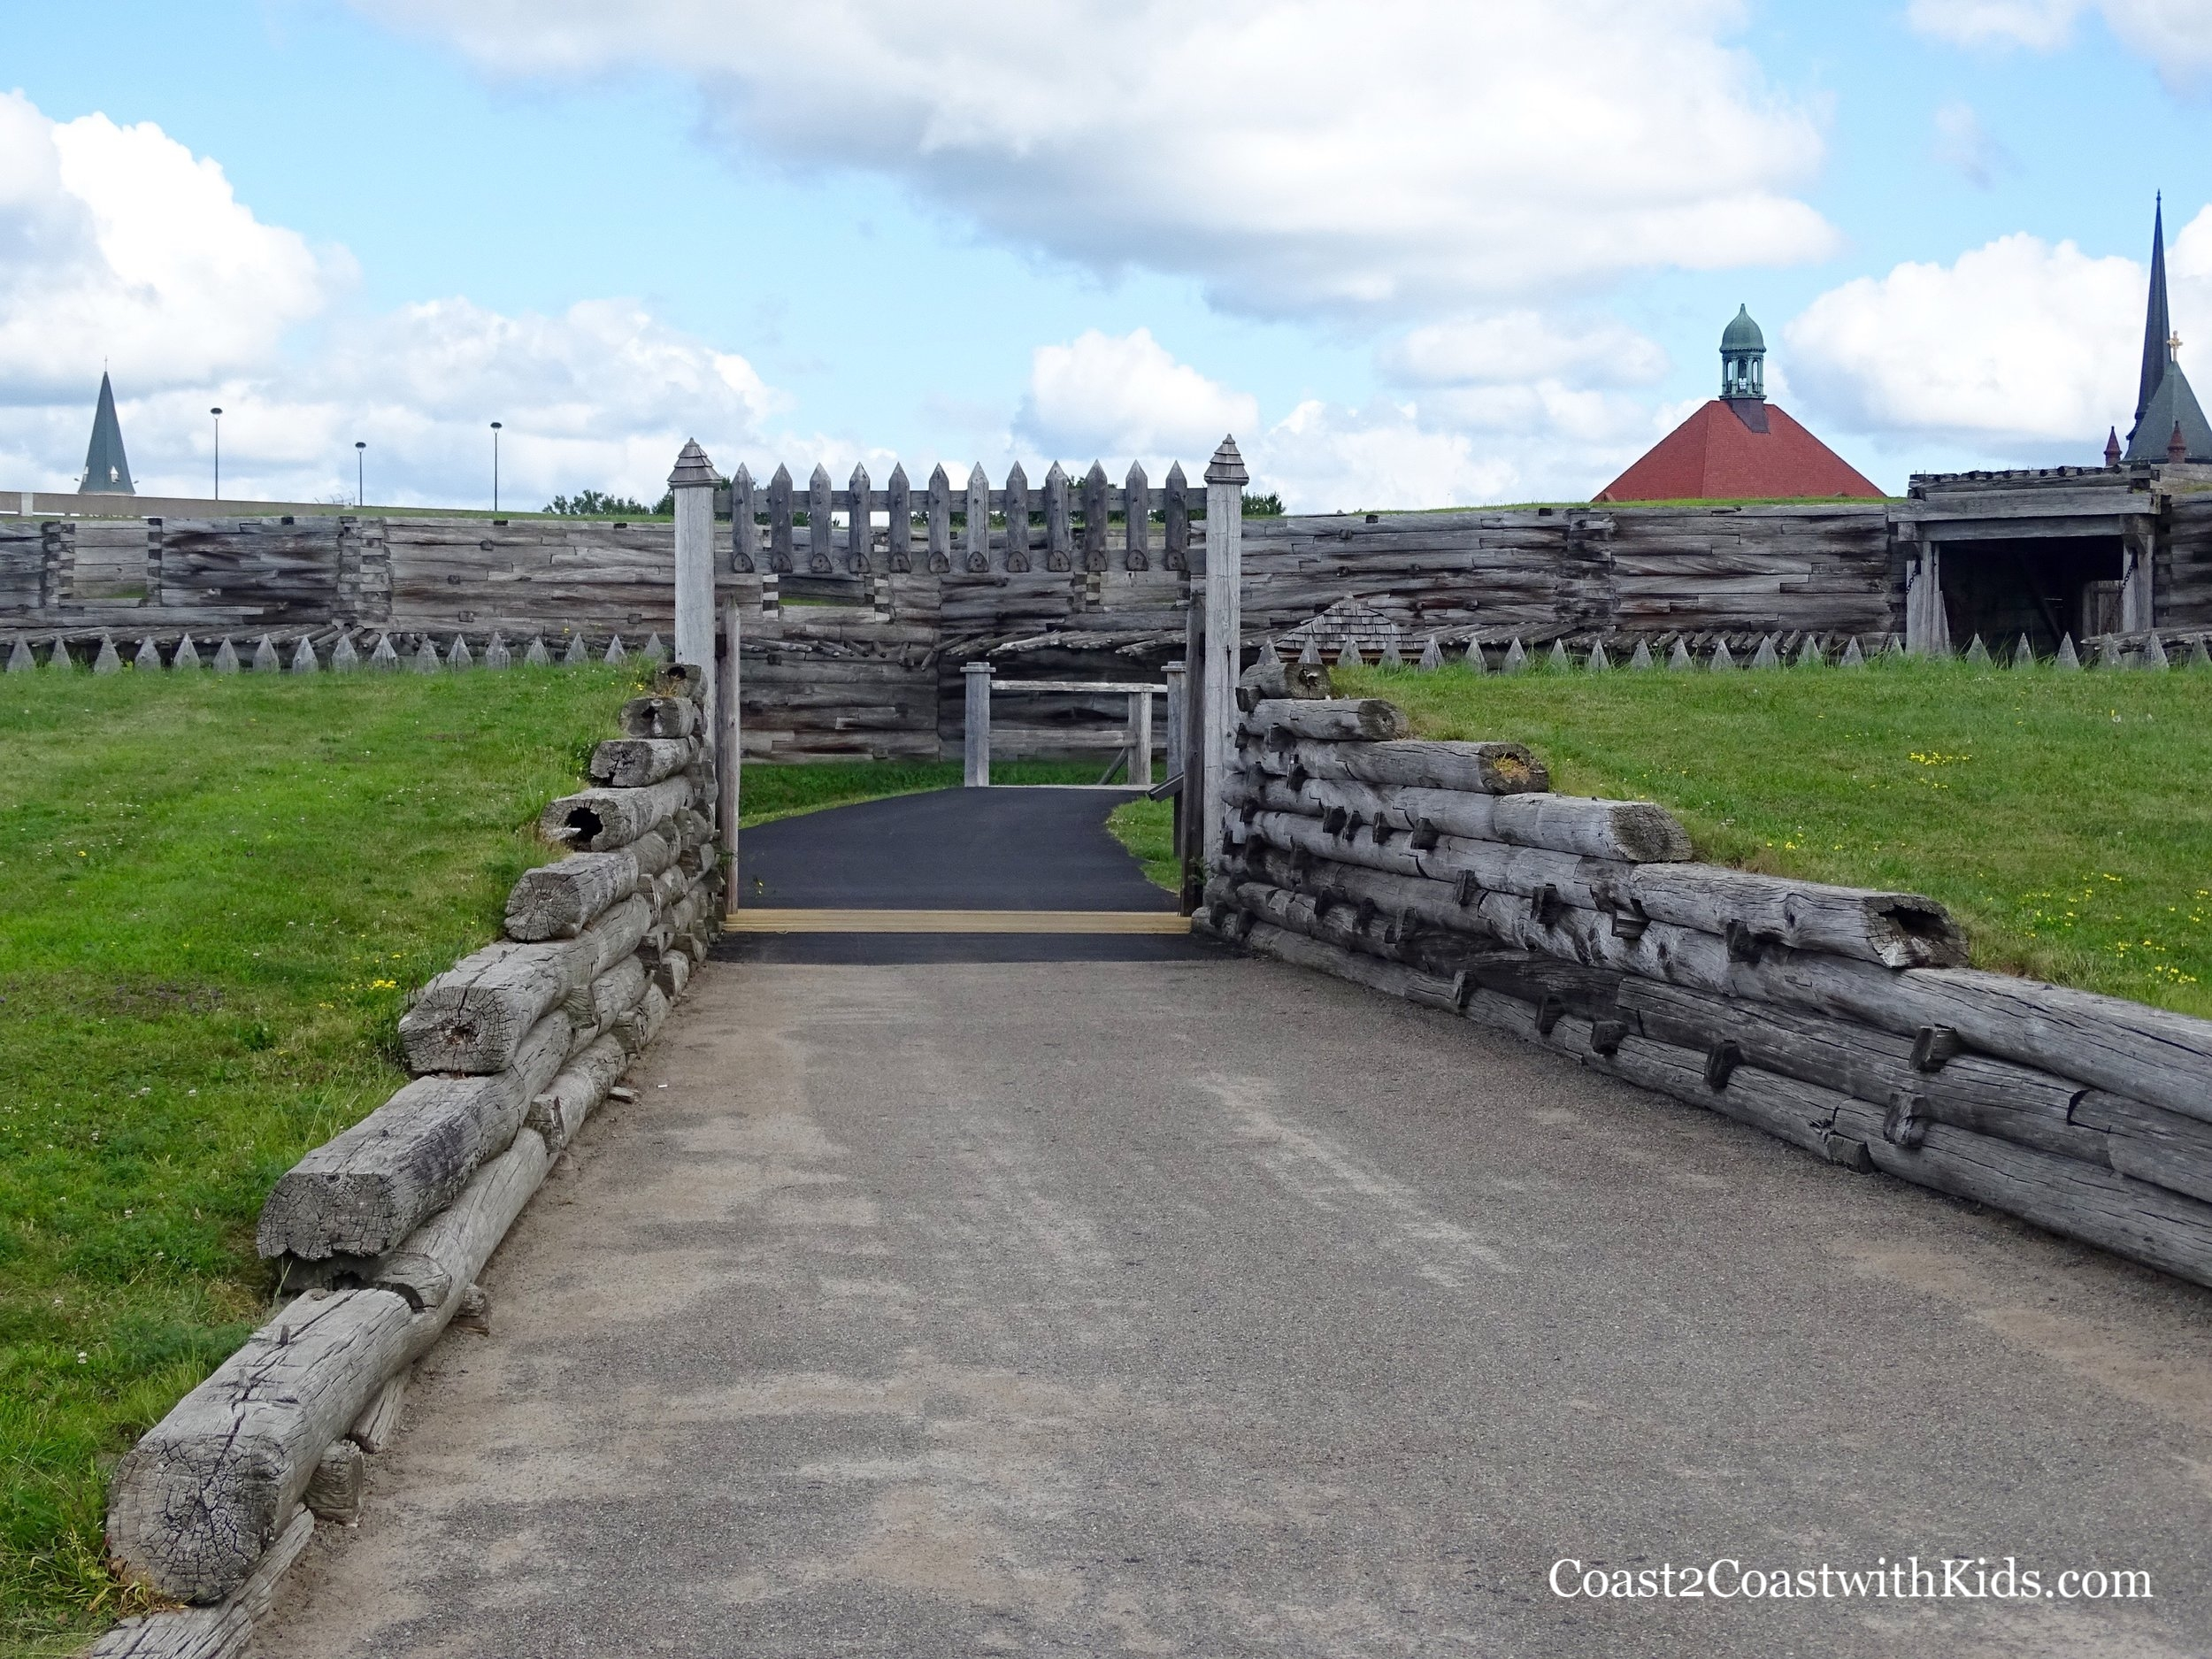 The gravel path to Fort Stanwix.